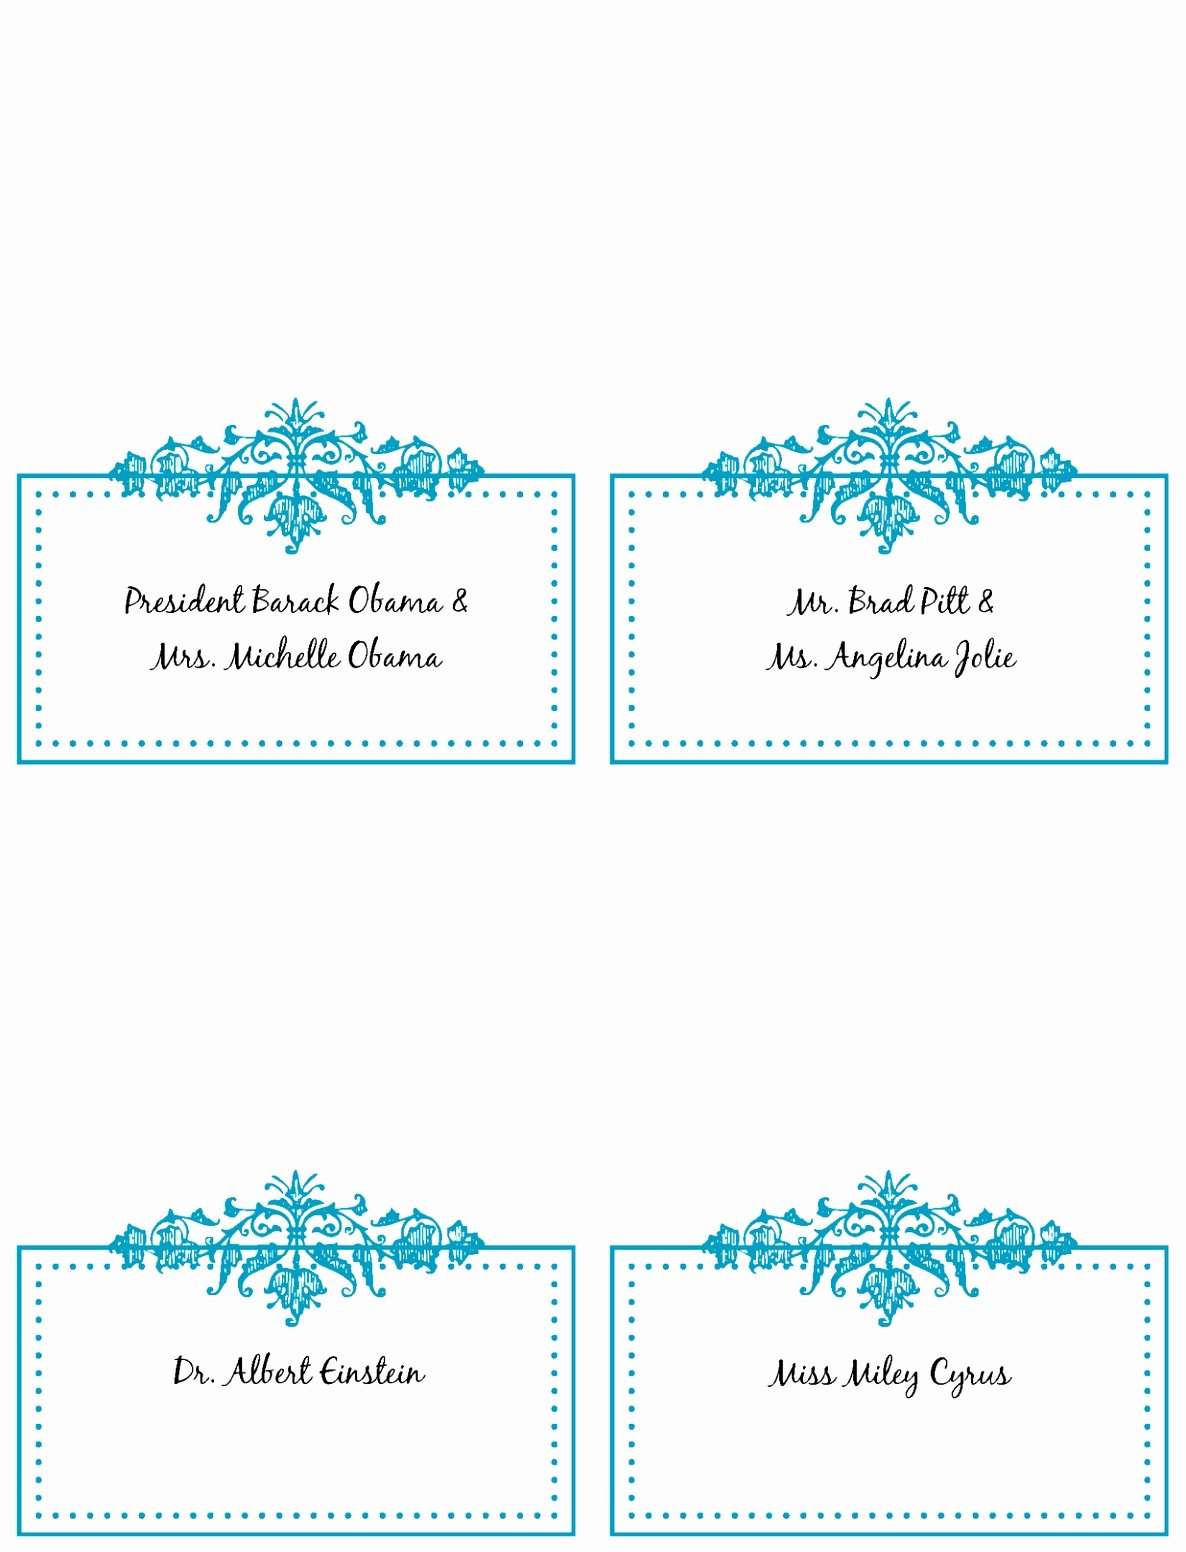 Place Cards Templates 6 Per Sheet Inspirational 9 Place Card Template Word 6 Per Sheet Puiwy